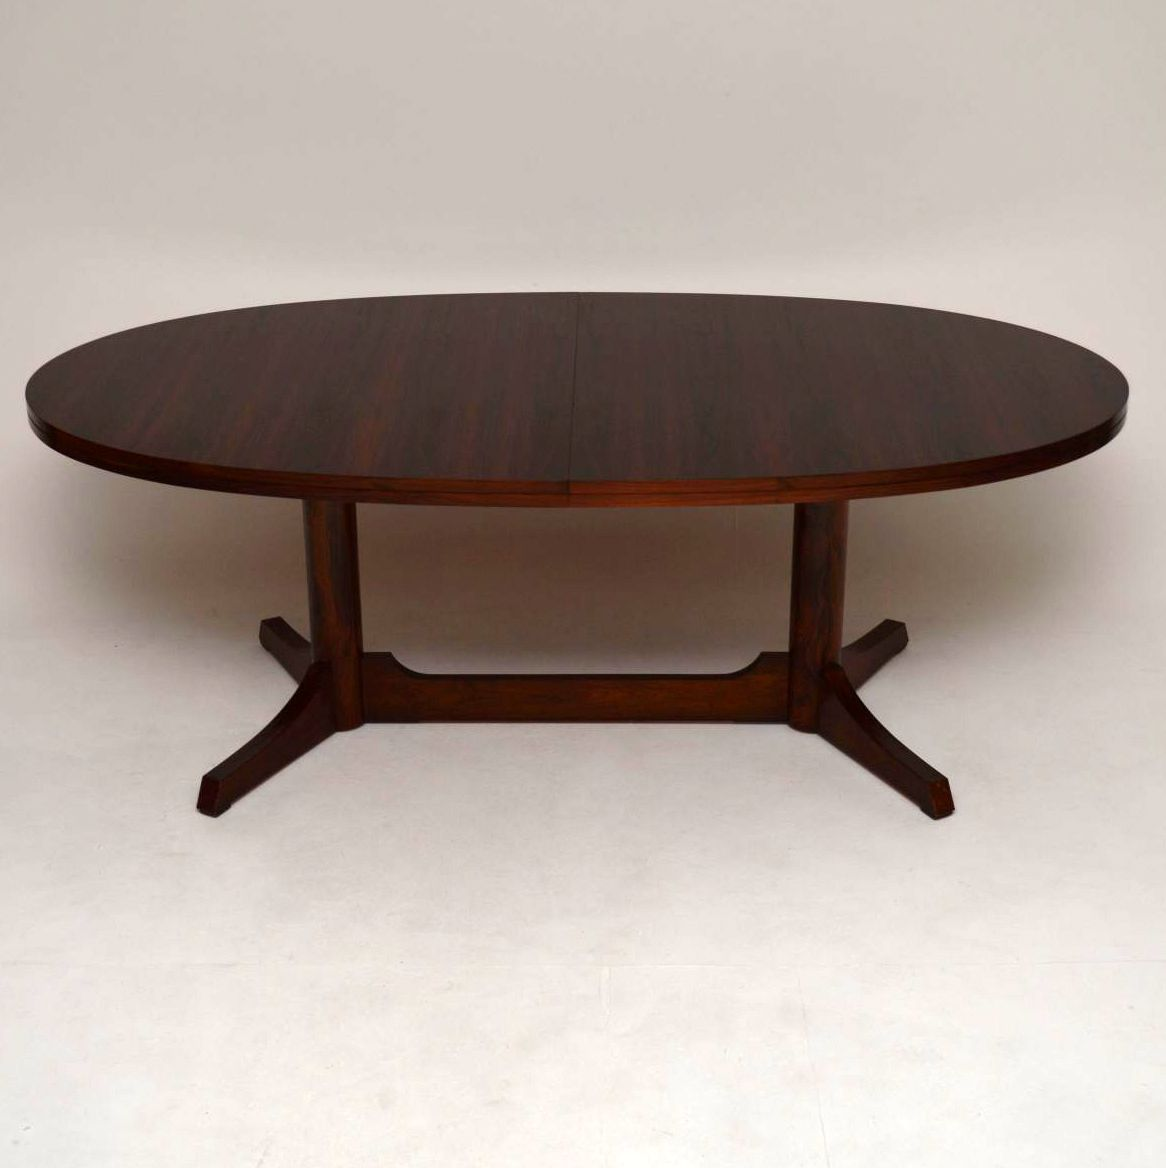 Retro Rosewood Dining Table by Robert Heritage for Archie Shine Vintage 1960's